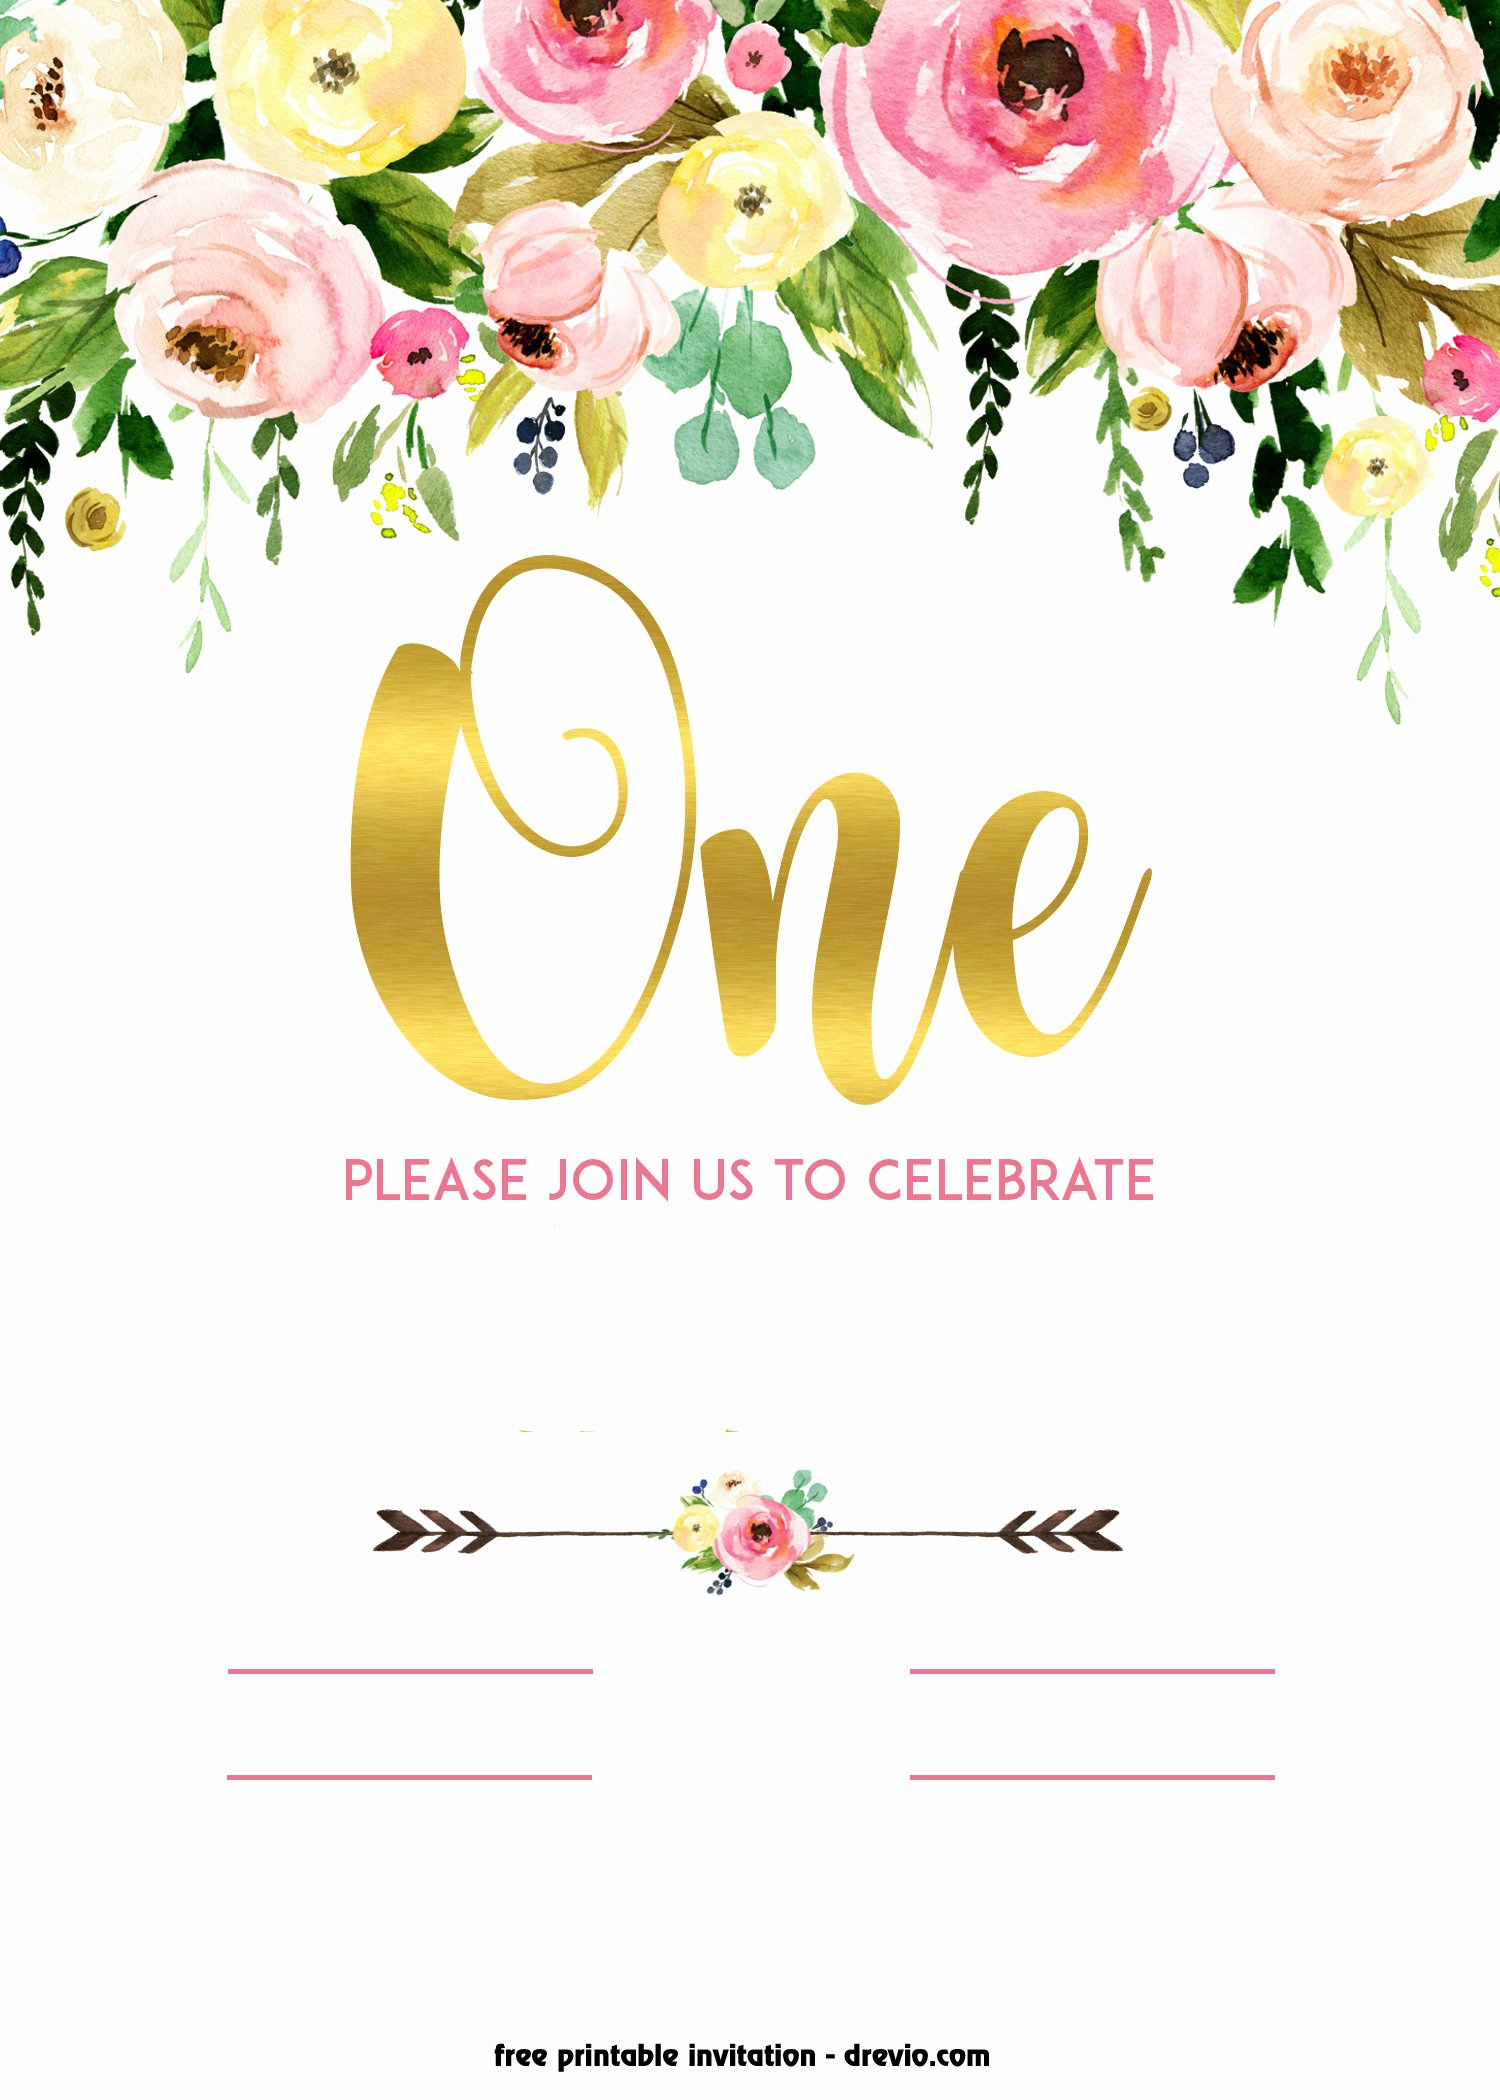 Flower Invitation Template Luxury Free Printable 1st Birthday Invitation – Vintage Style